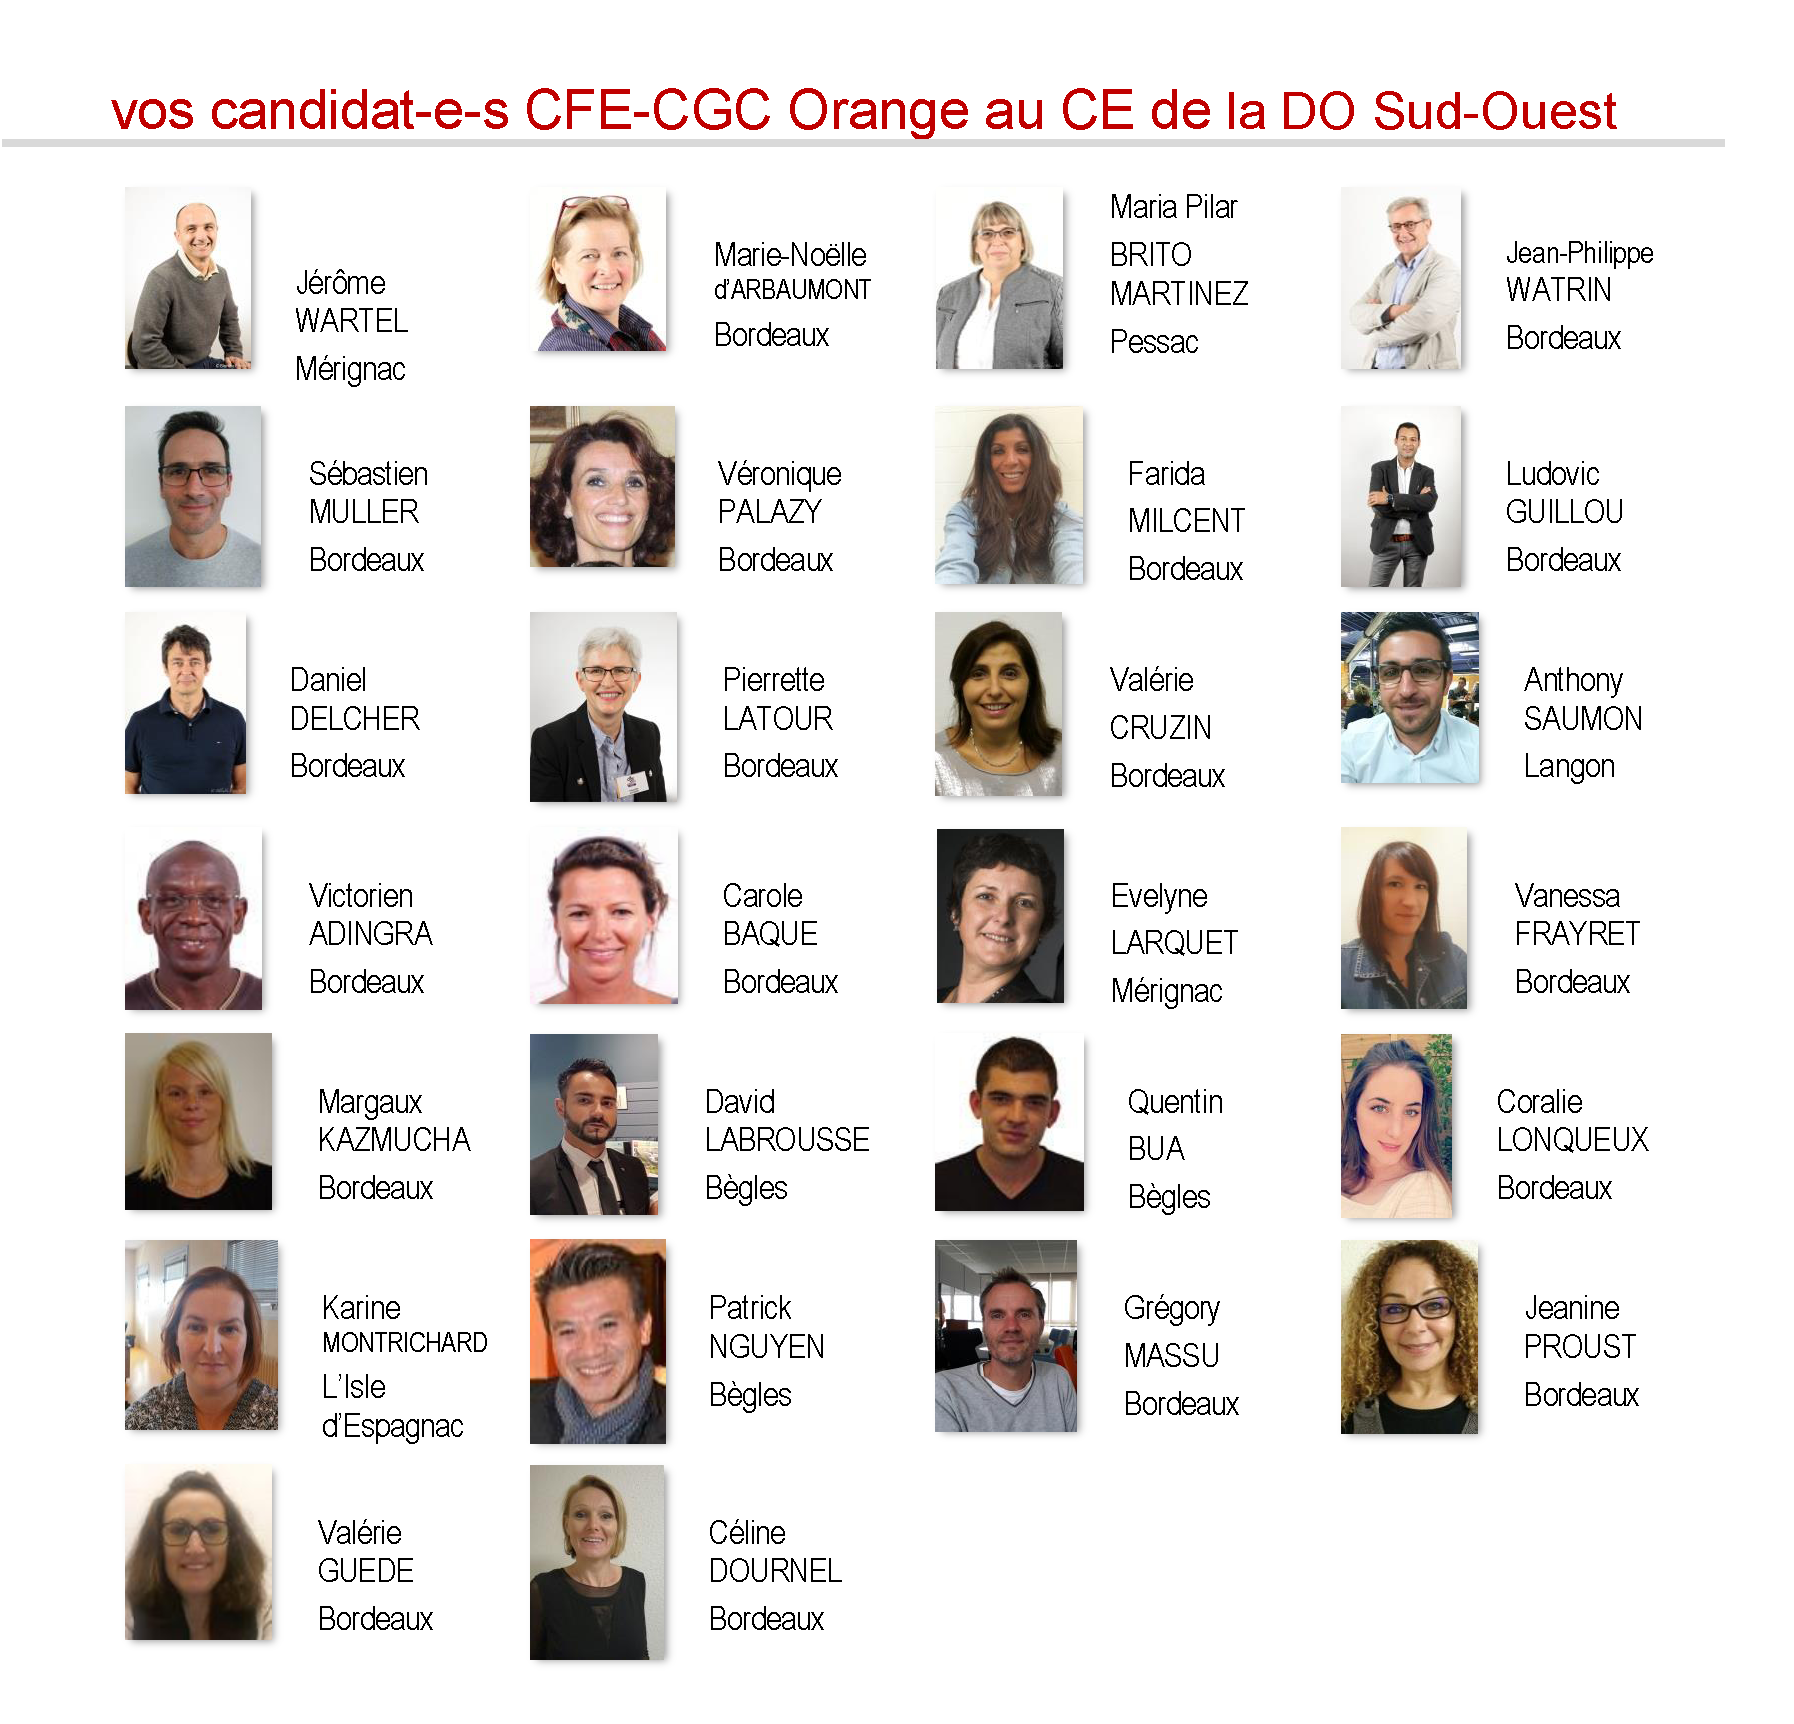 pf do so ce cfe cgc orange trombi